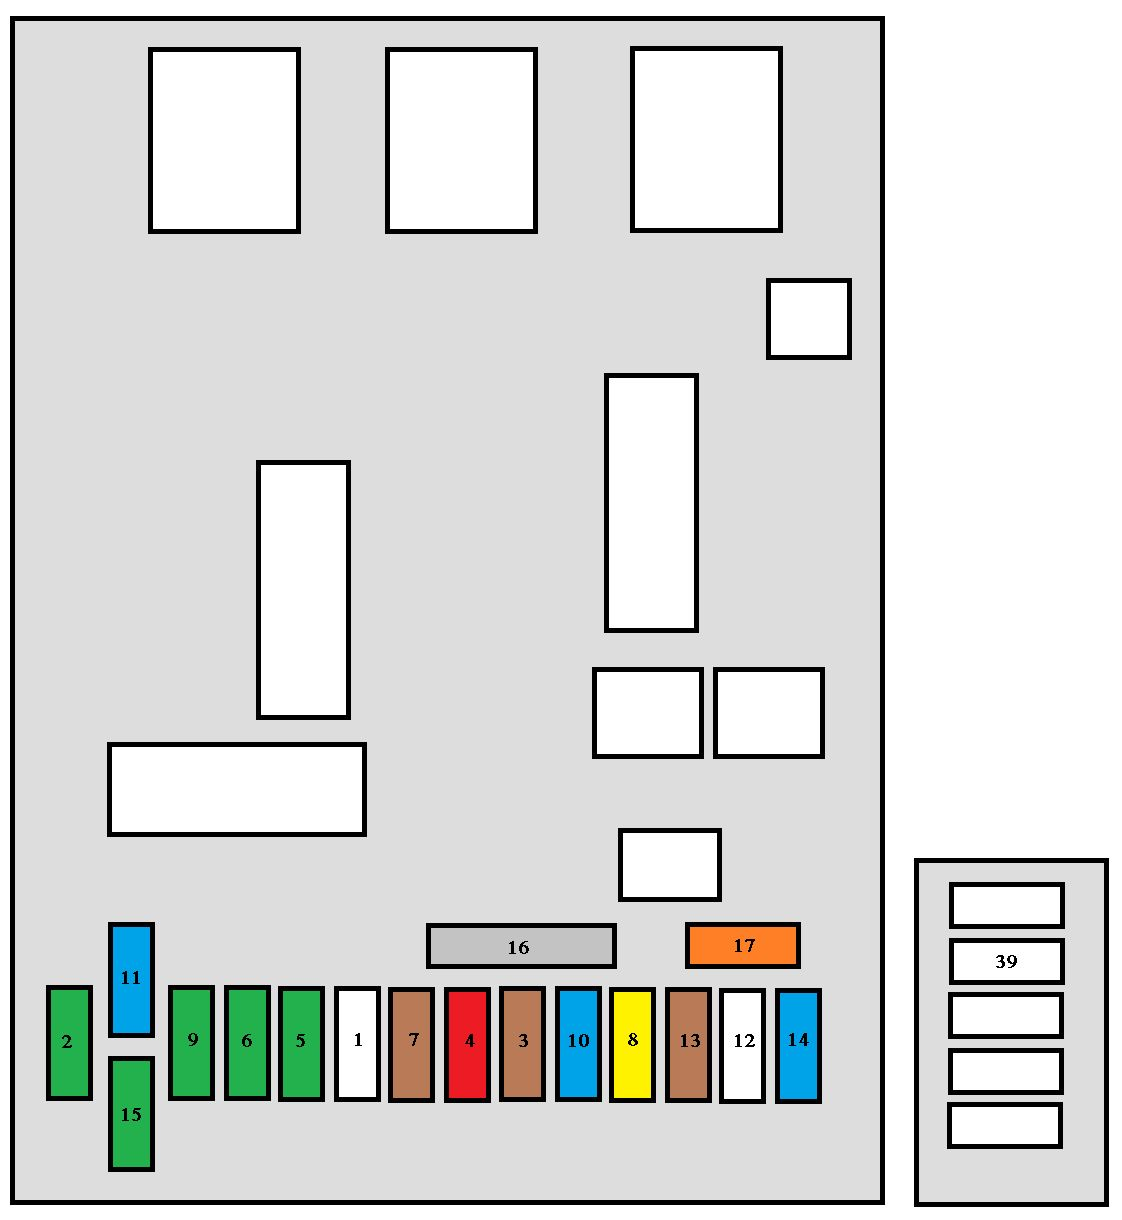 medium resolution of fuse box diagram peugeot 206 wiring library peugeot 206 1 4 hdi fuse box diagram fuse box